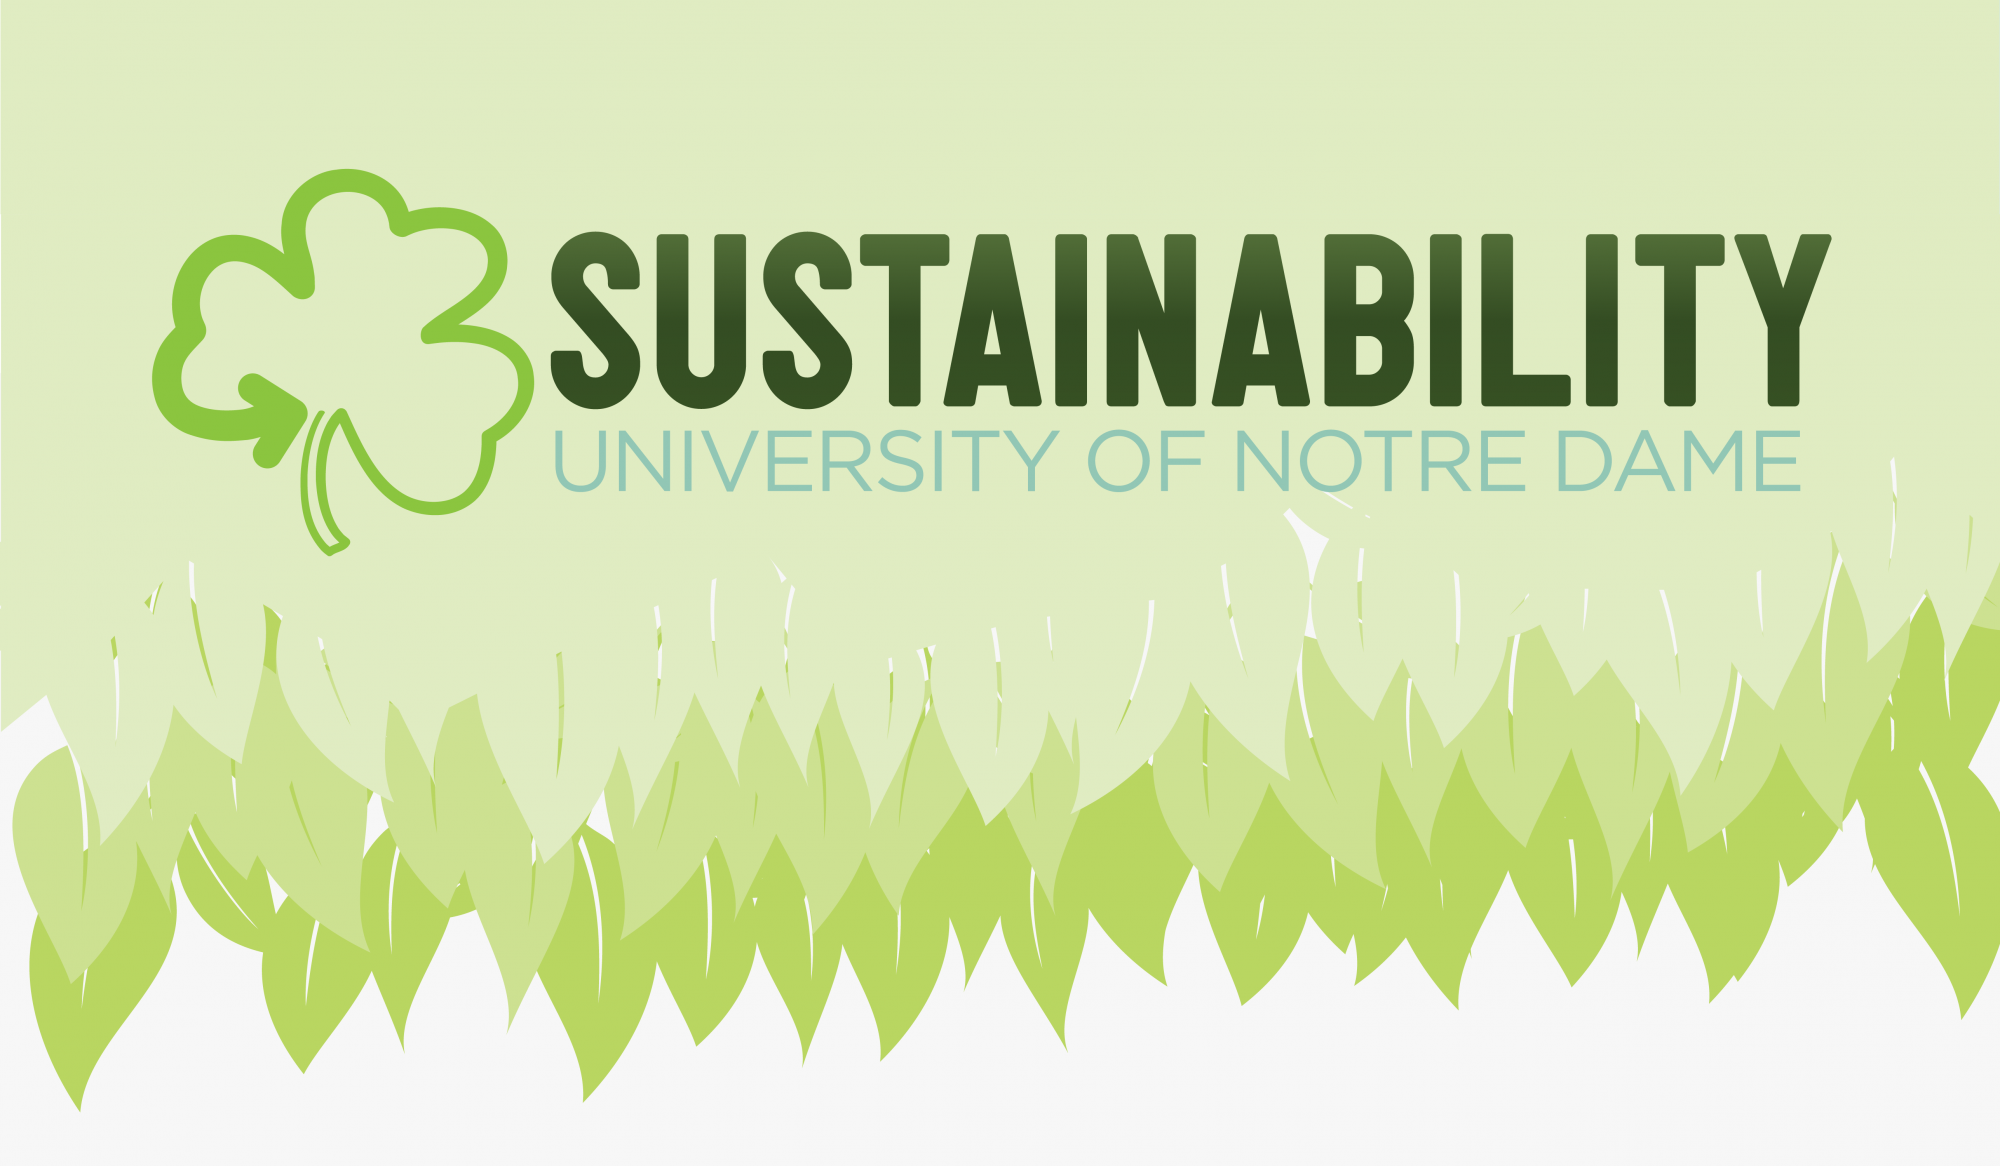 Notre Dame Office of Sustainability